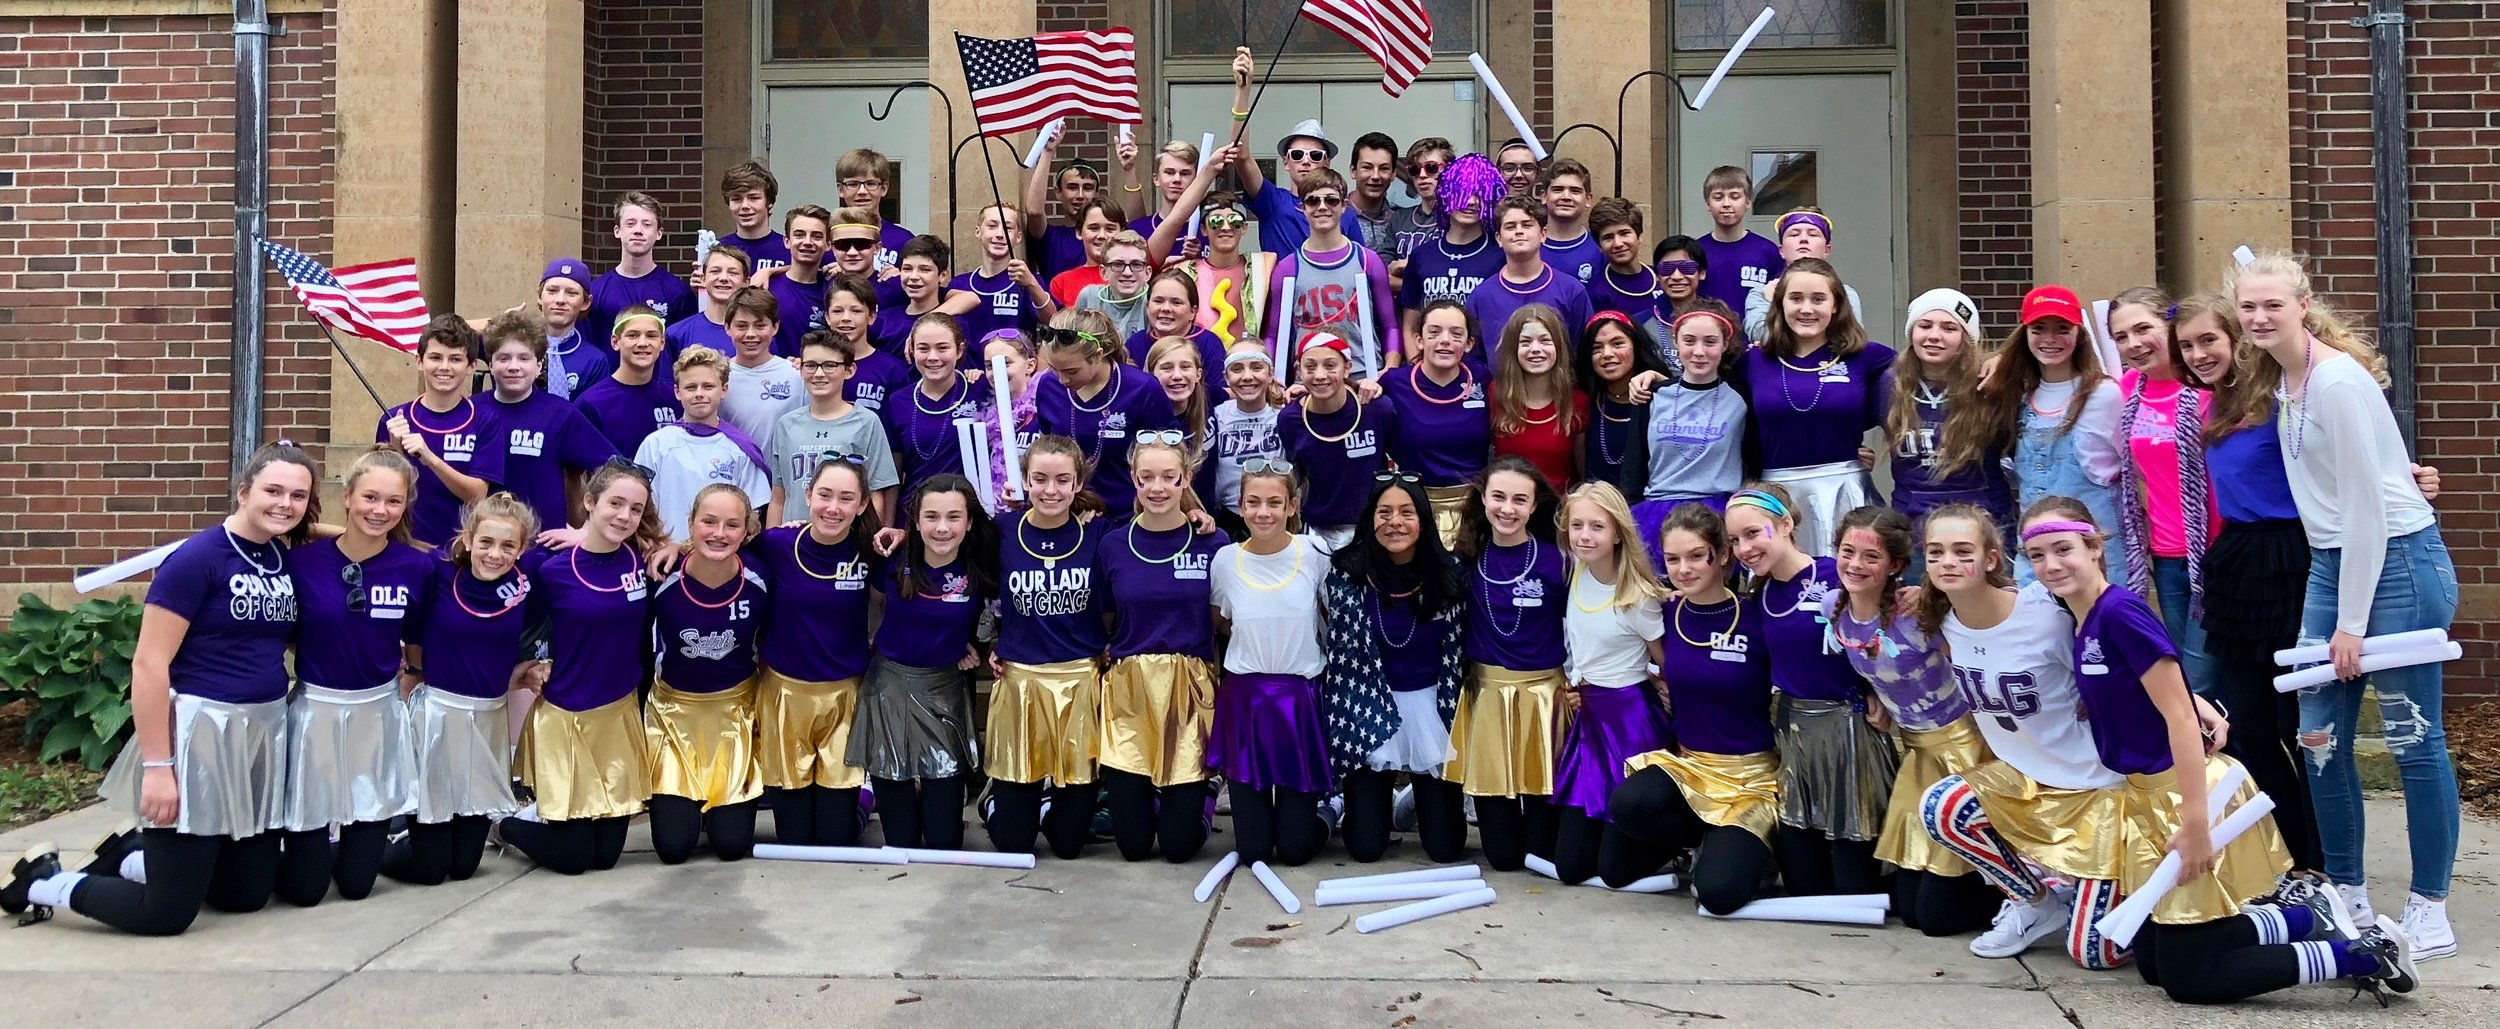 The OLG Class of 2019 after the Dancing with the OLG Stars Marathon Pepfest in September of 2018.